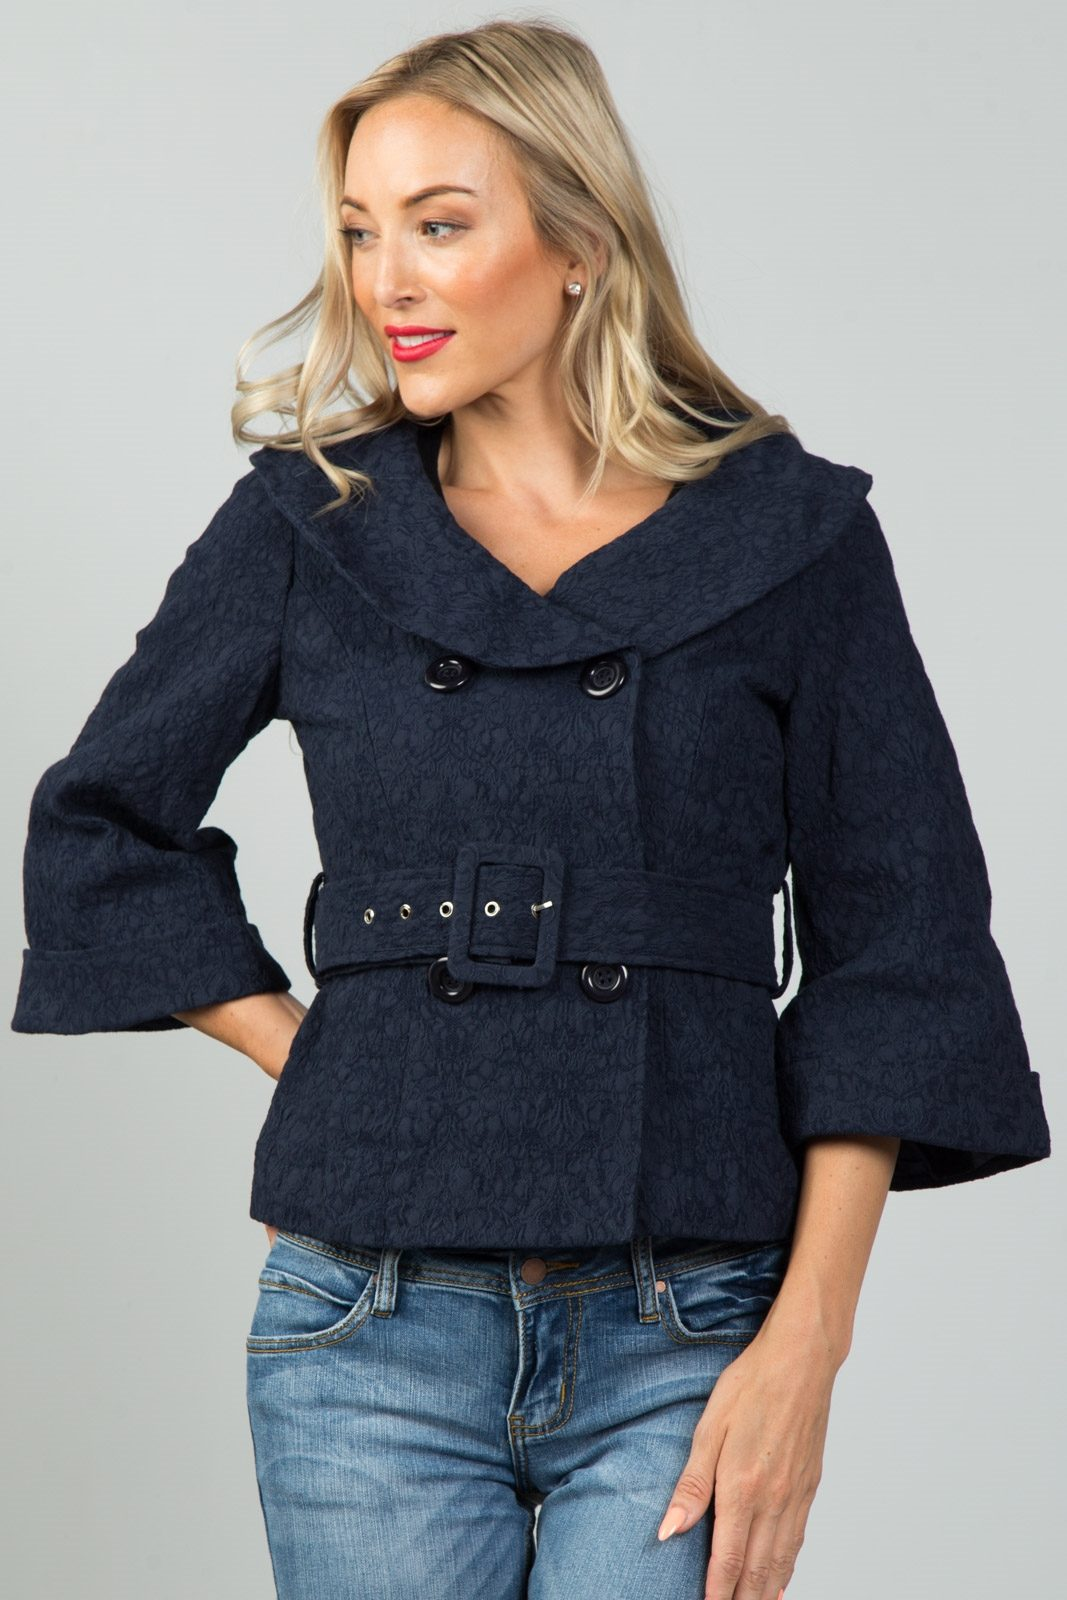 Ladies fashion textured double breasted jacket